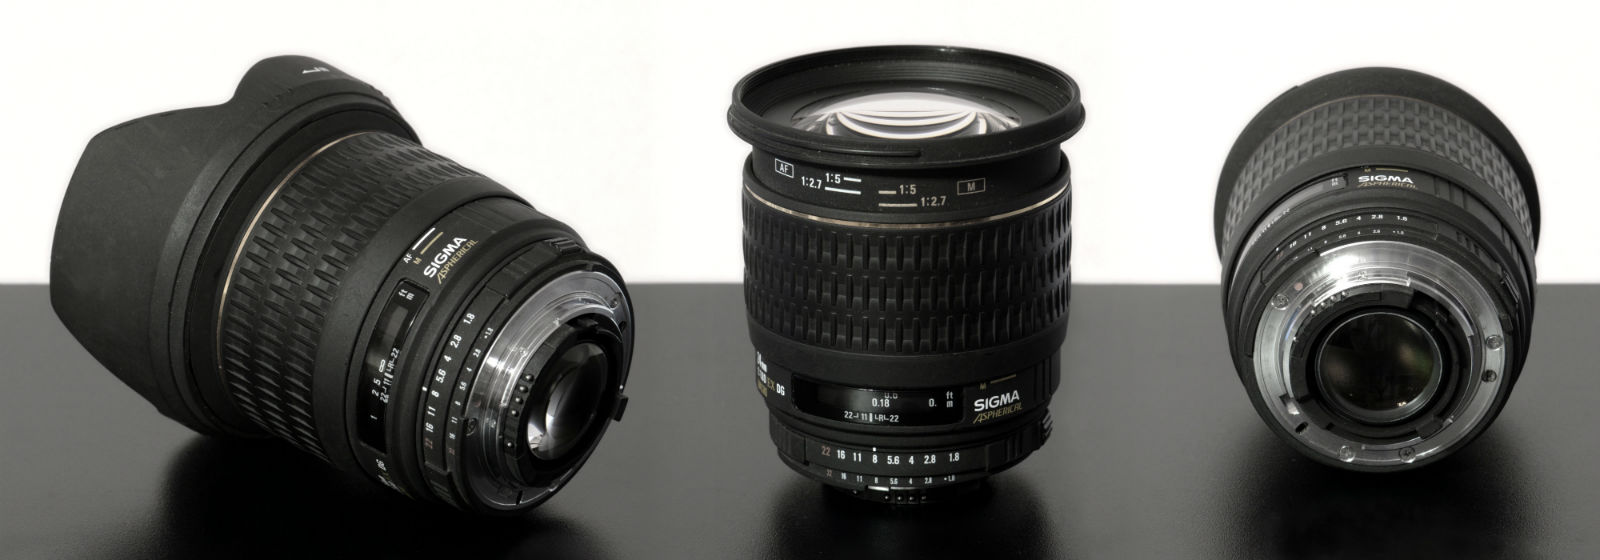 Camera Dslr Camera Lens Types the 3 types of lenses every beginning dslr shooter needs tech while typical zoom will suffice for everyday shots like candids shooting high quality portraits typically requires a fi